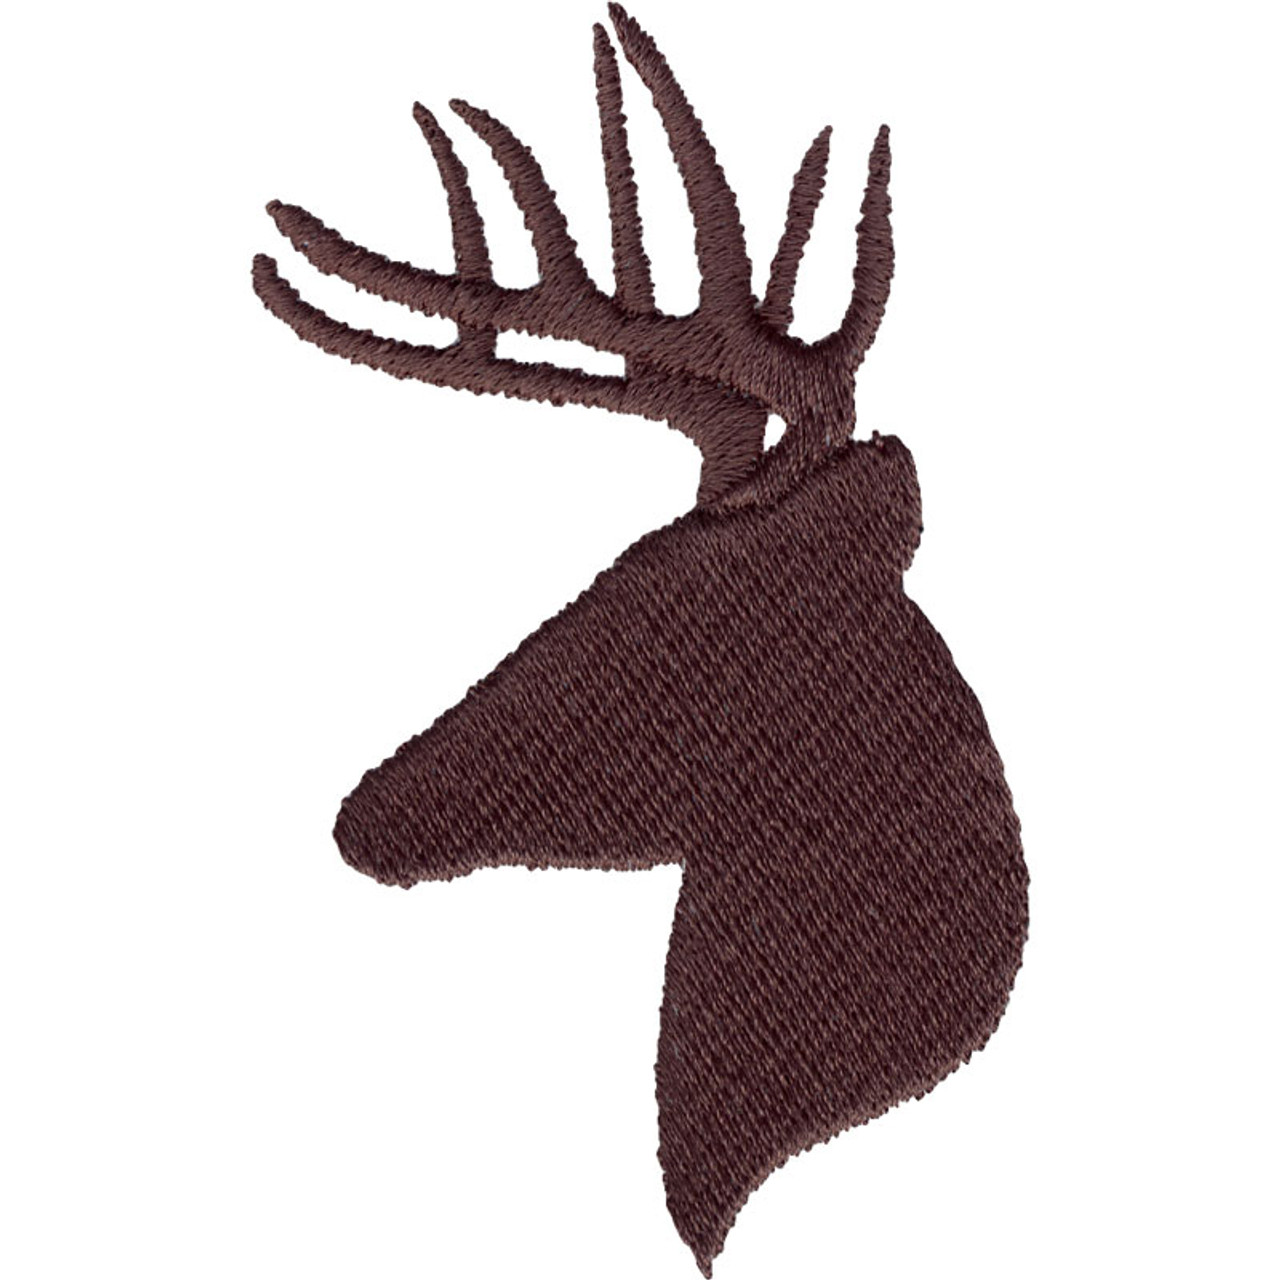 Deer Head Silhouette Find high quality head silhouette, all silhouette images can be downloaded for free for personal use only. deer head silhouette